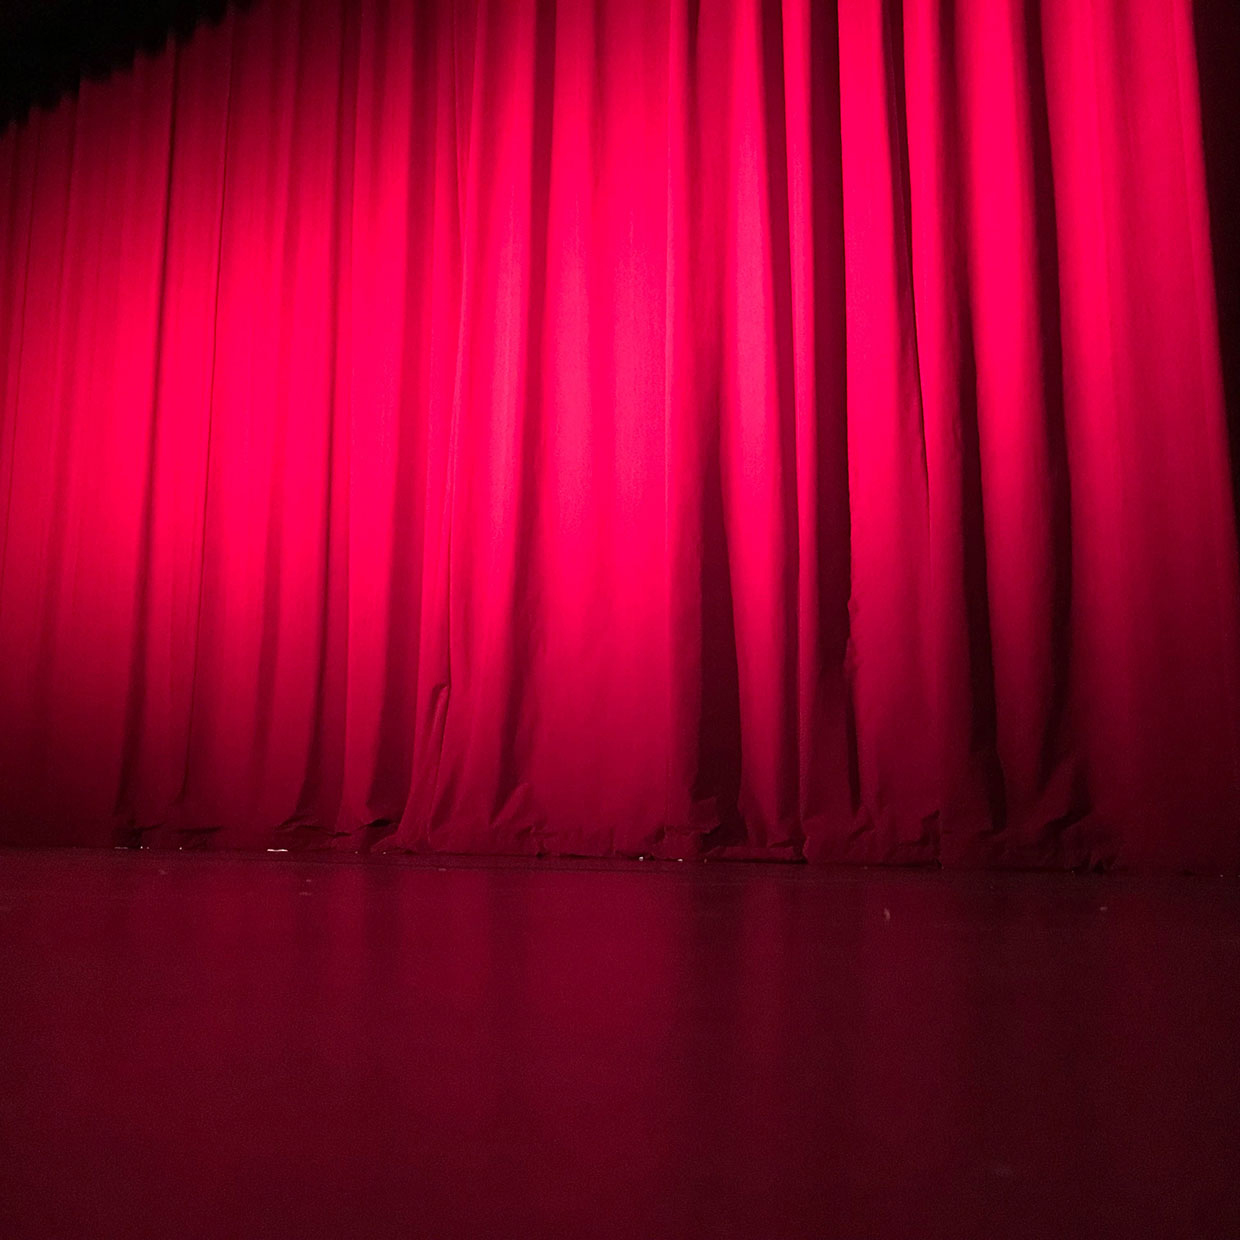 Red curtains about to open for the performance on stage